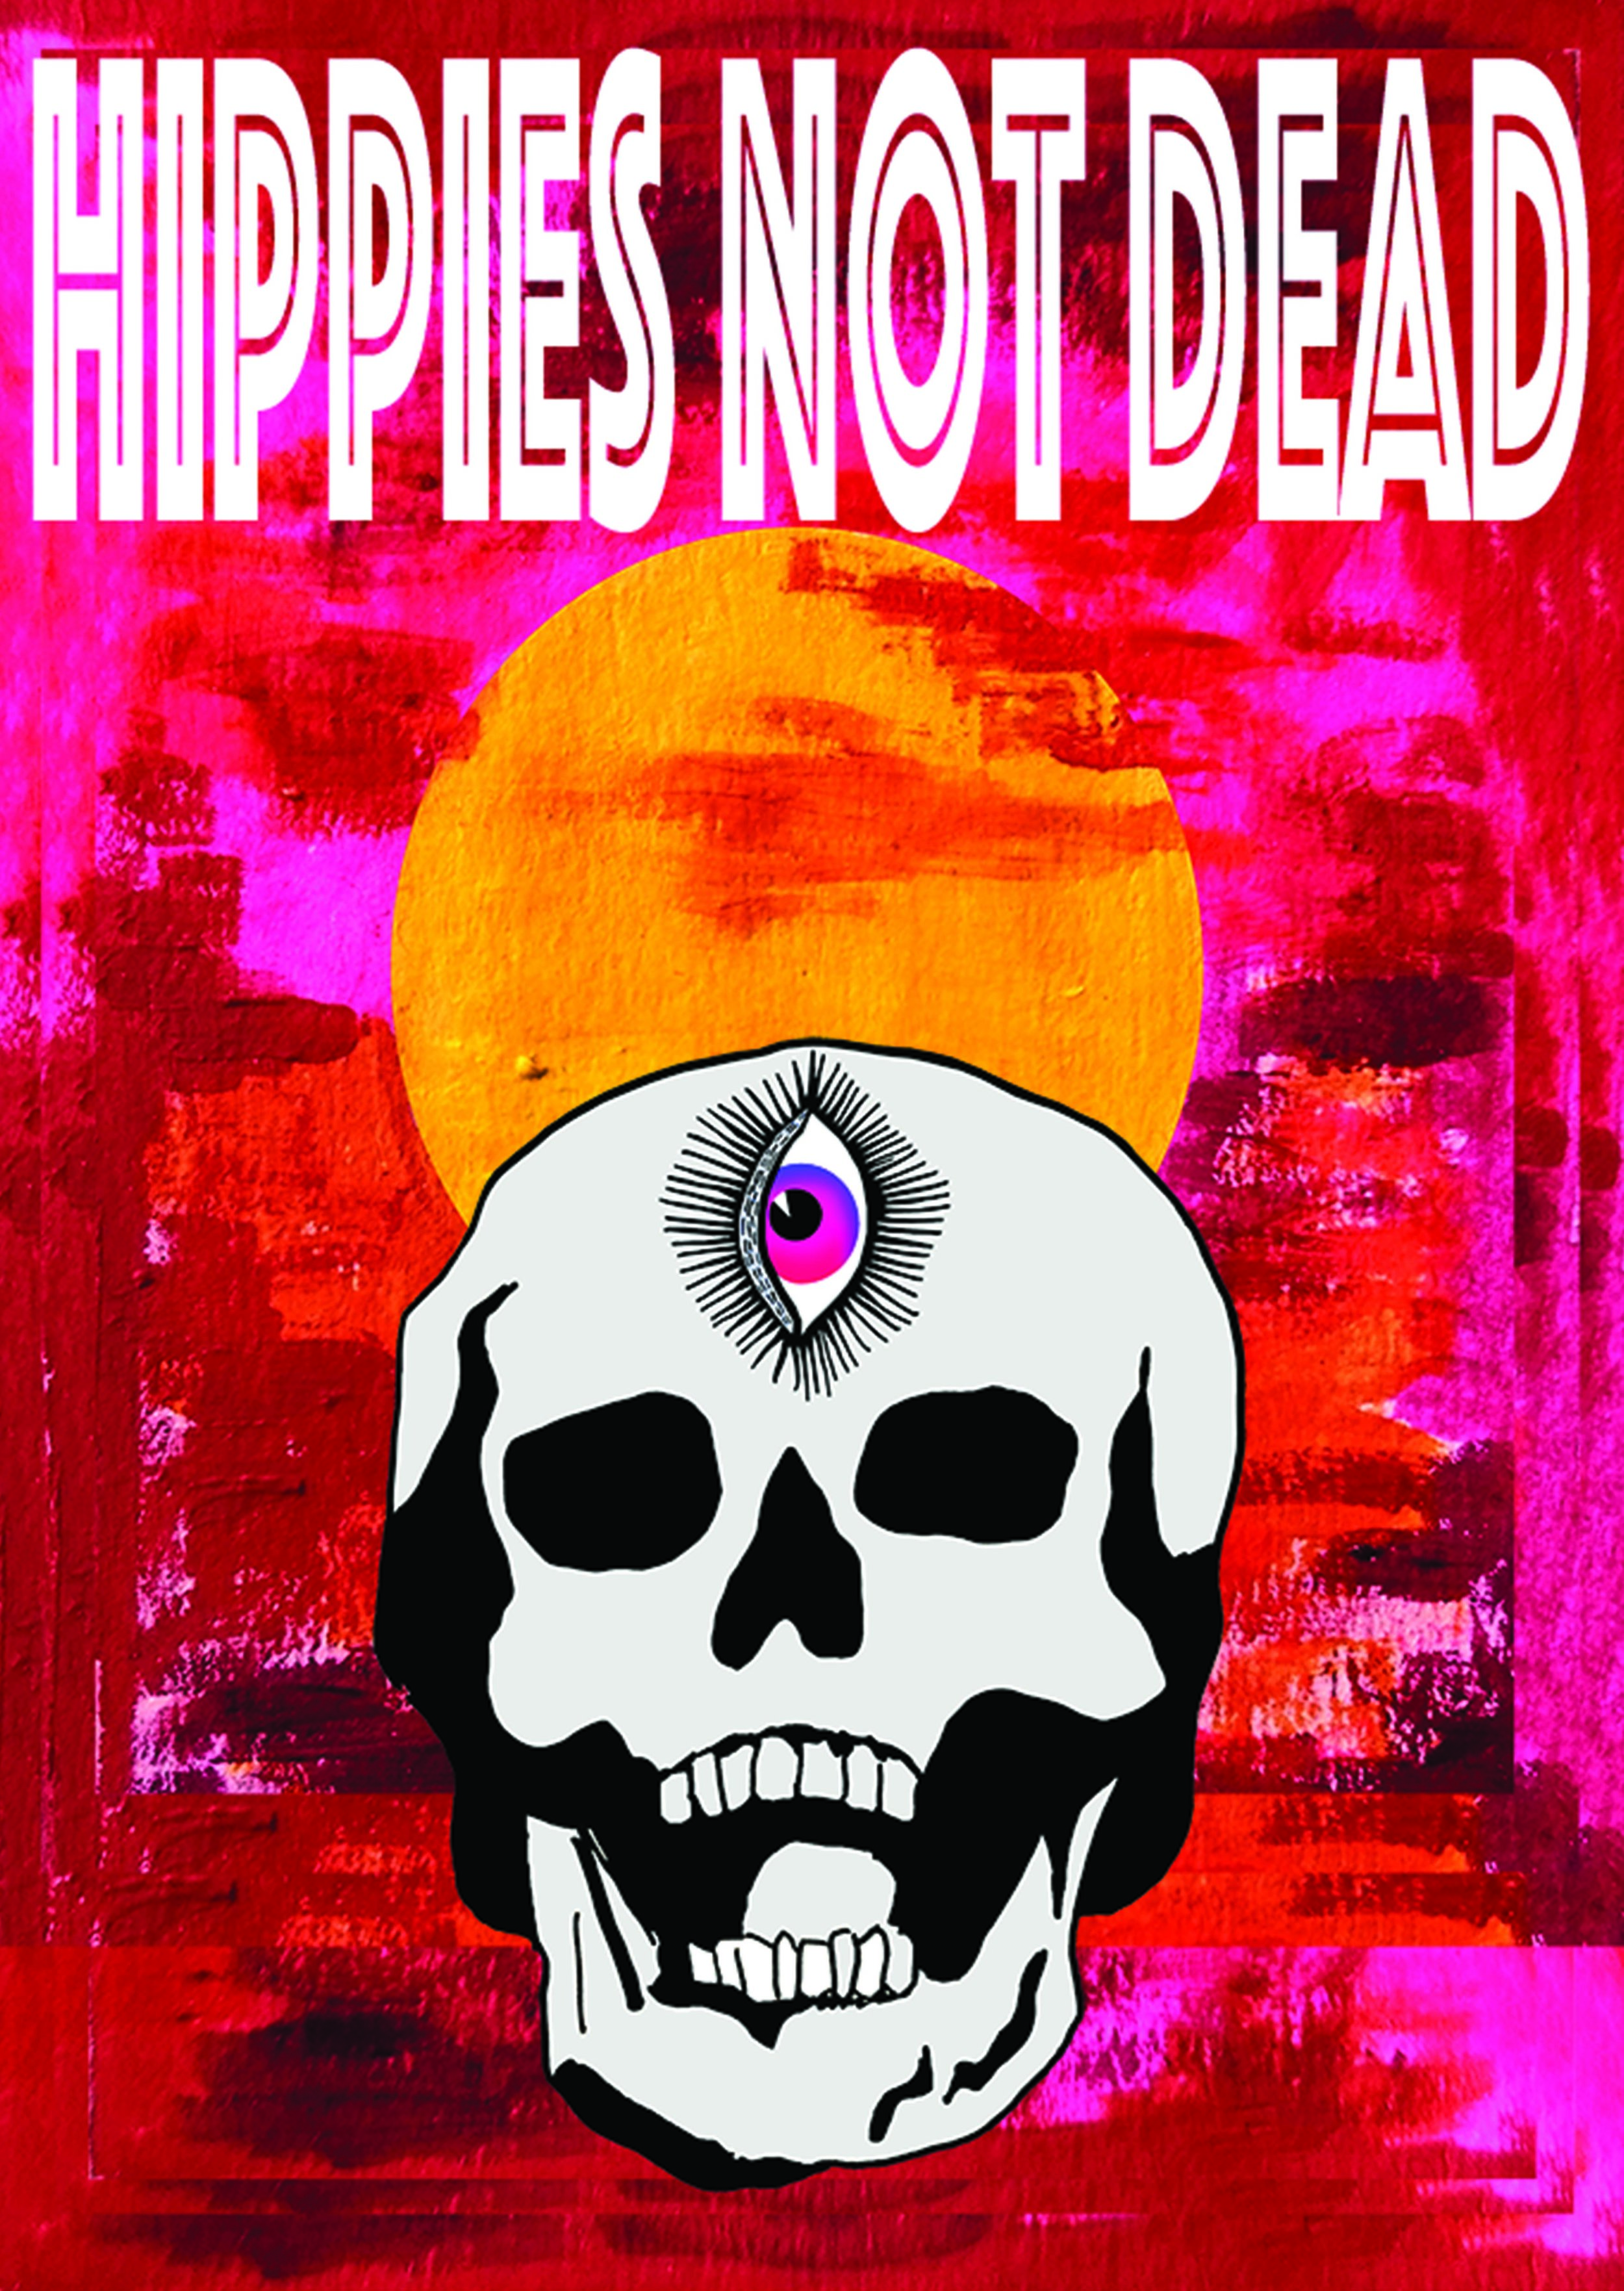 Hippies not dead design.jpg